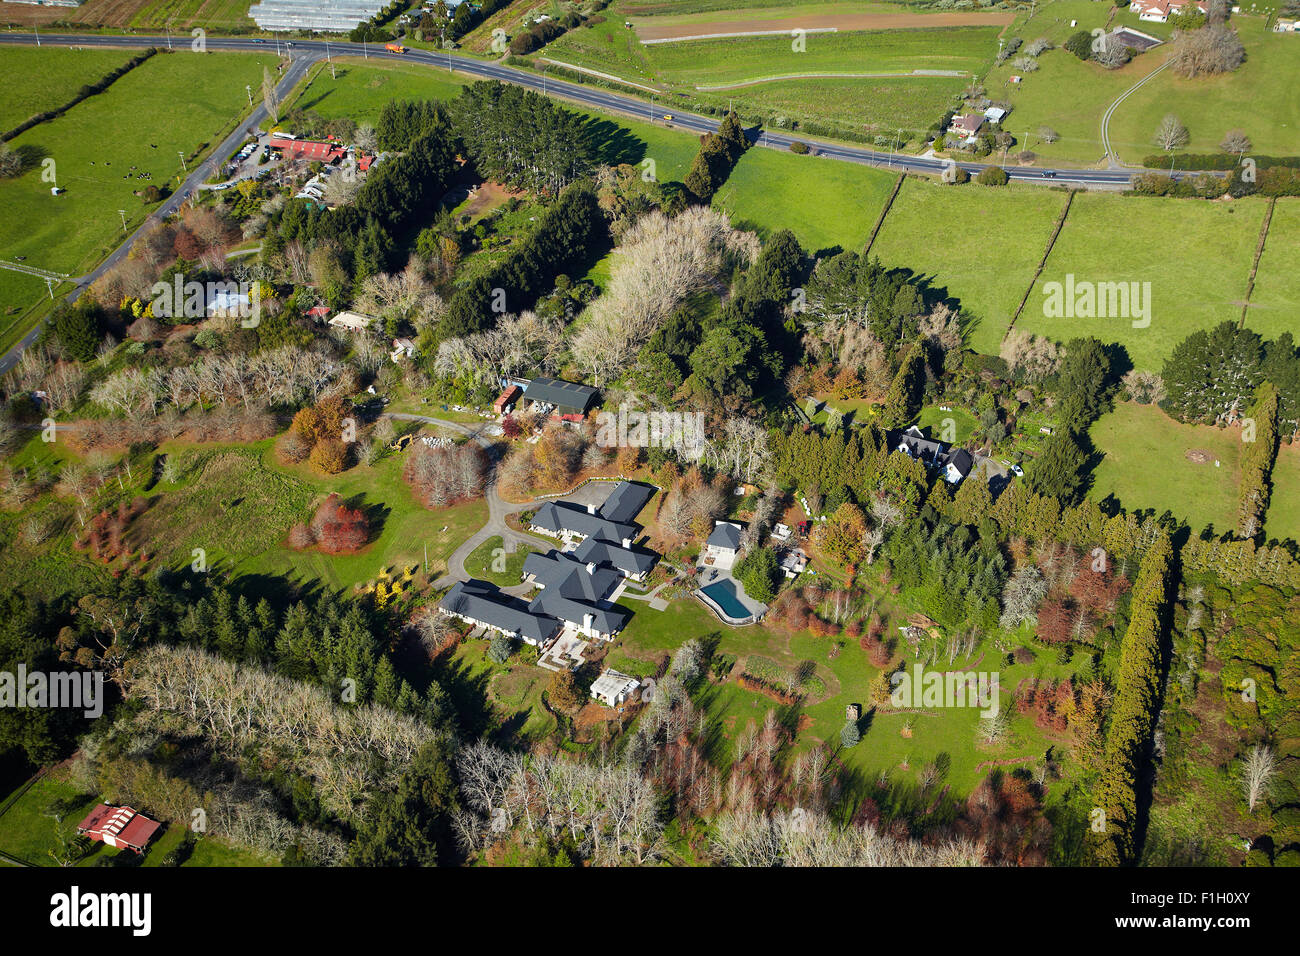 Lifestyle property, Drury, South Auckland, North Island, New Zealand - aerial - Stock Image